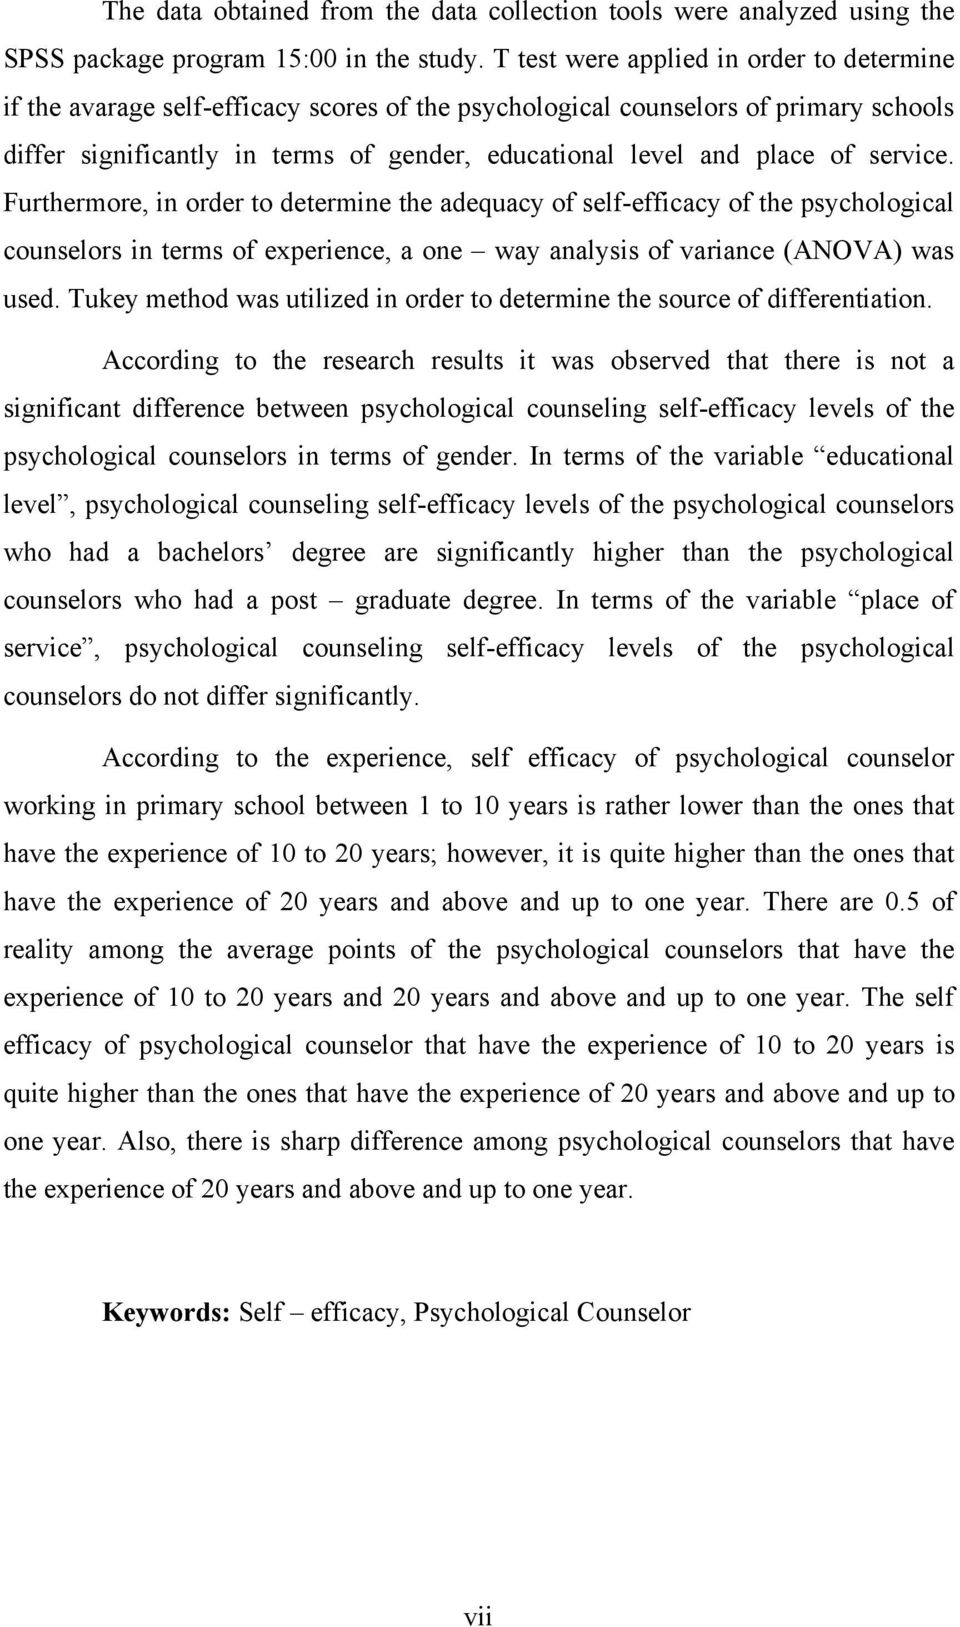 of service. Furthermore, in order to determine the adequacy of self-efficacy of the psychological counselors in terms of experience, a one way analysis of variance (ANOVA) was used.